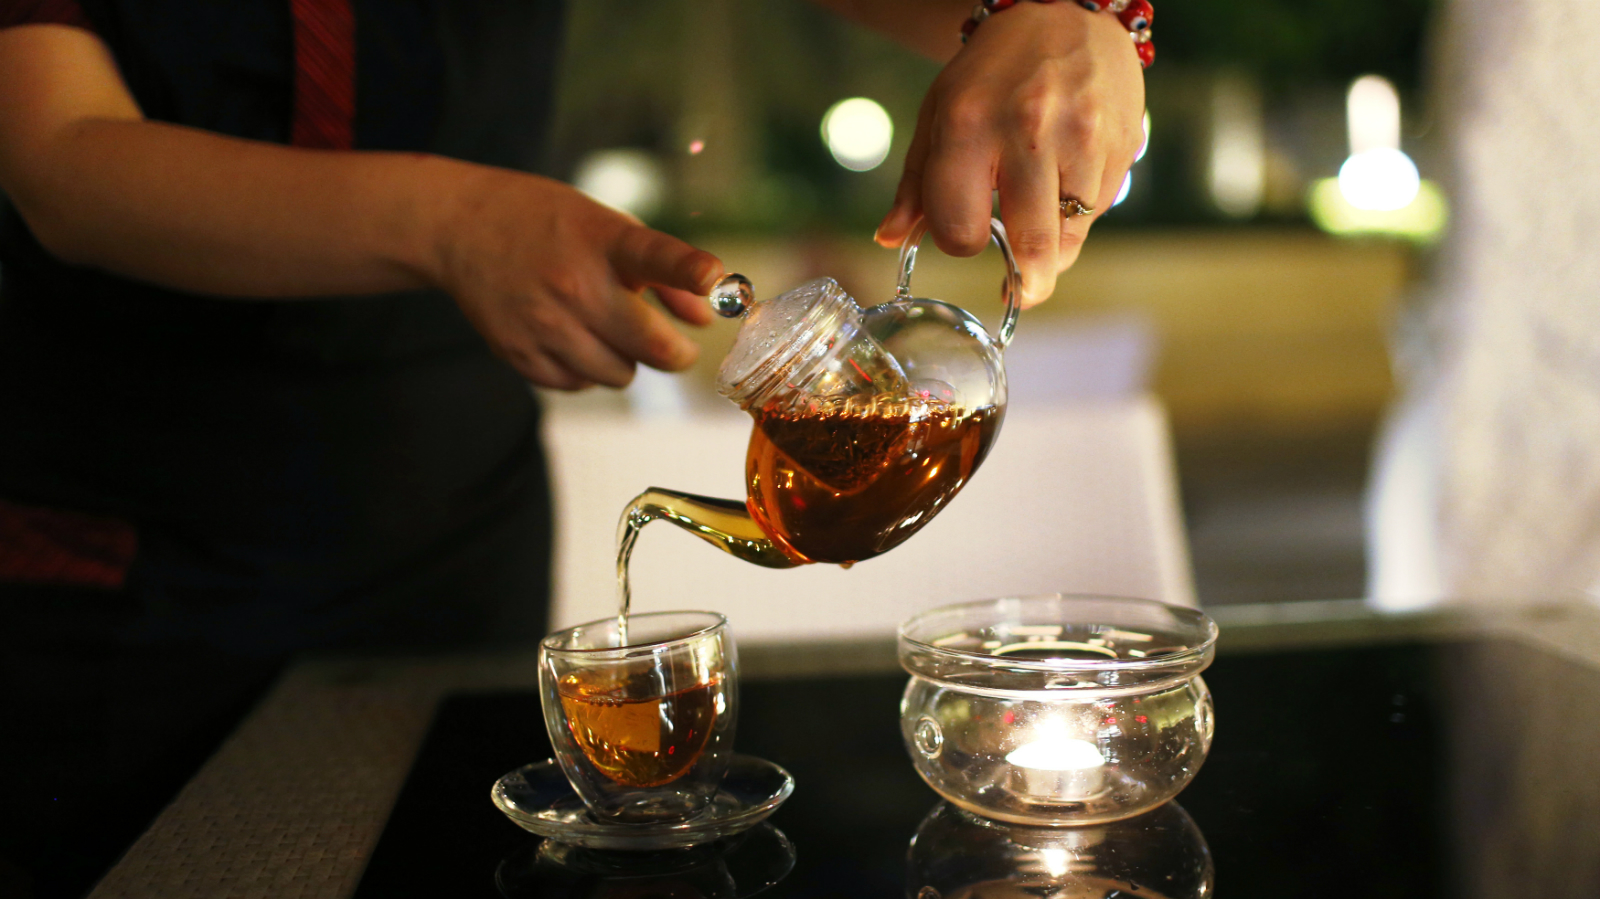 A server pours a pot of tea, made from gold-plated tea leaves, for customers at Mocca art cafe in Dubai September 21, 2013. The cafe is the first to serve such tea in the Middle East. The tea was sourced from Ceylon, sent to Germany for gold plating and then to Morocco for flavouring.